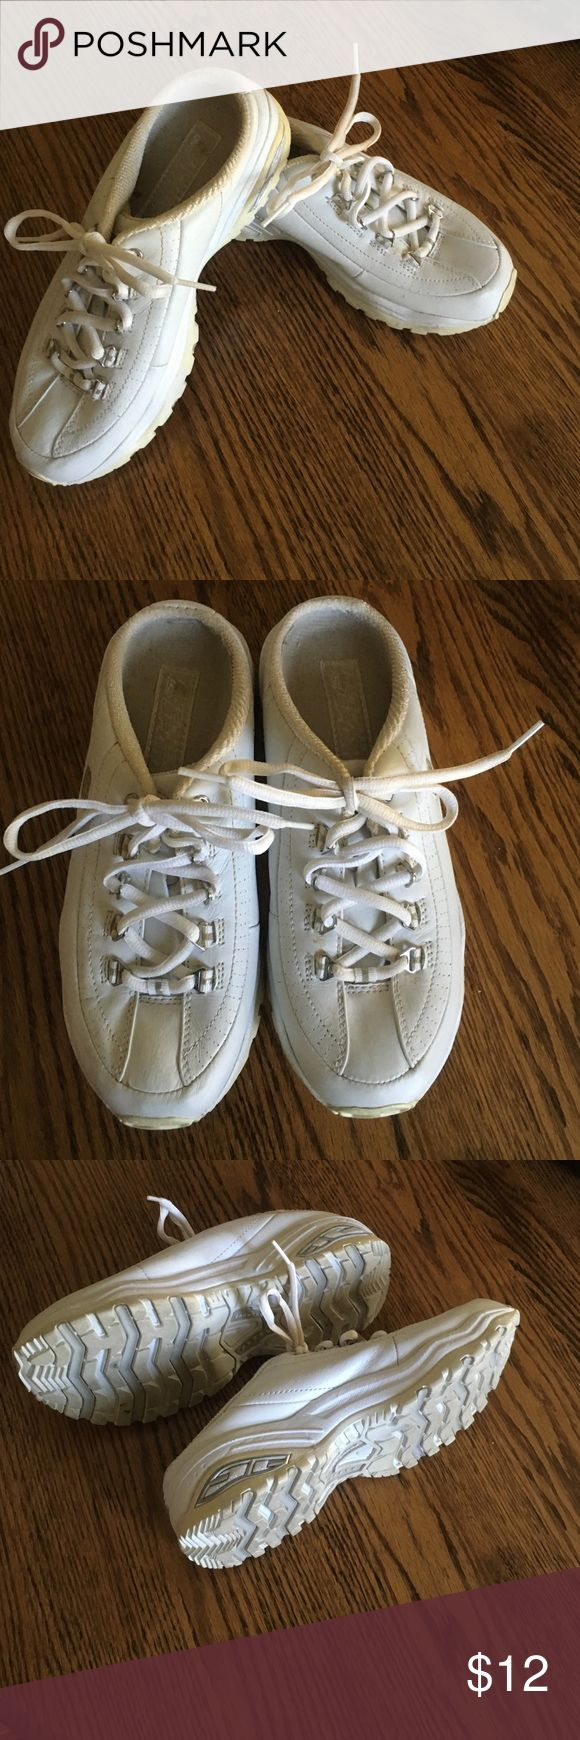 White Skechers sport slip ons Size 7 1/2 Skechers slip on white sneakers. In very good condition Skechers Shoes Sneakers